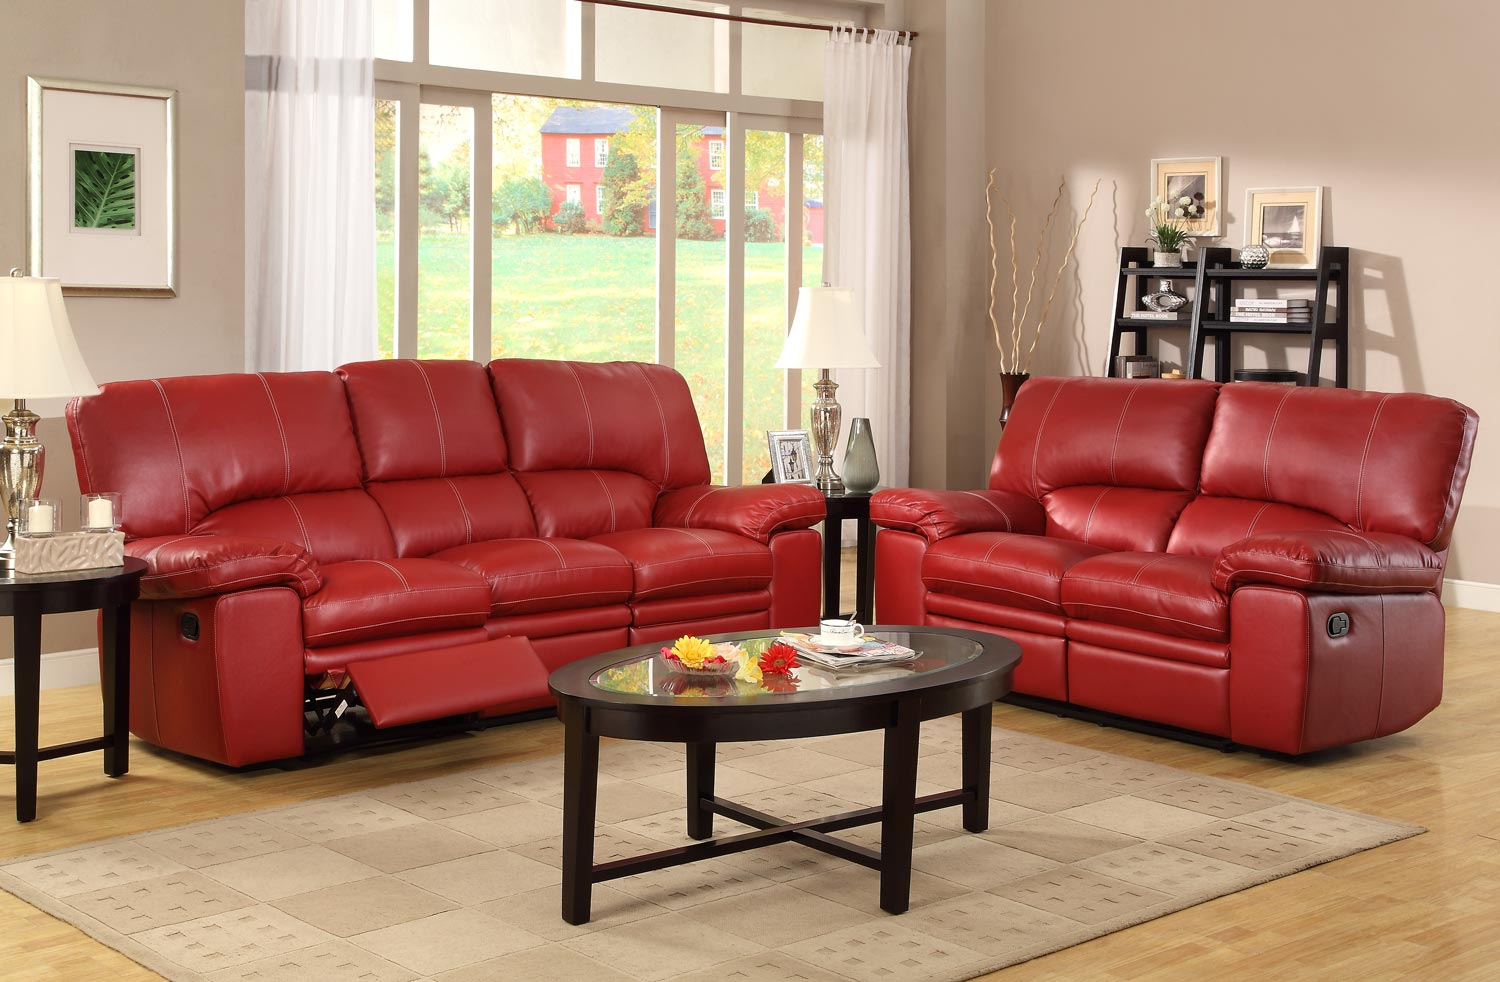 Homelegance Kendrick Reclining Sofa Set Red Bonded Leather Match U9611red 3